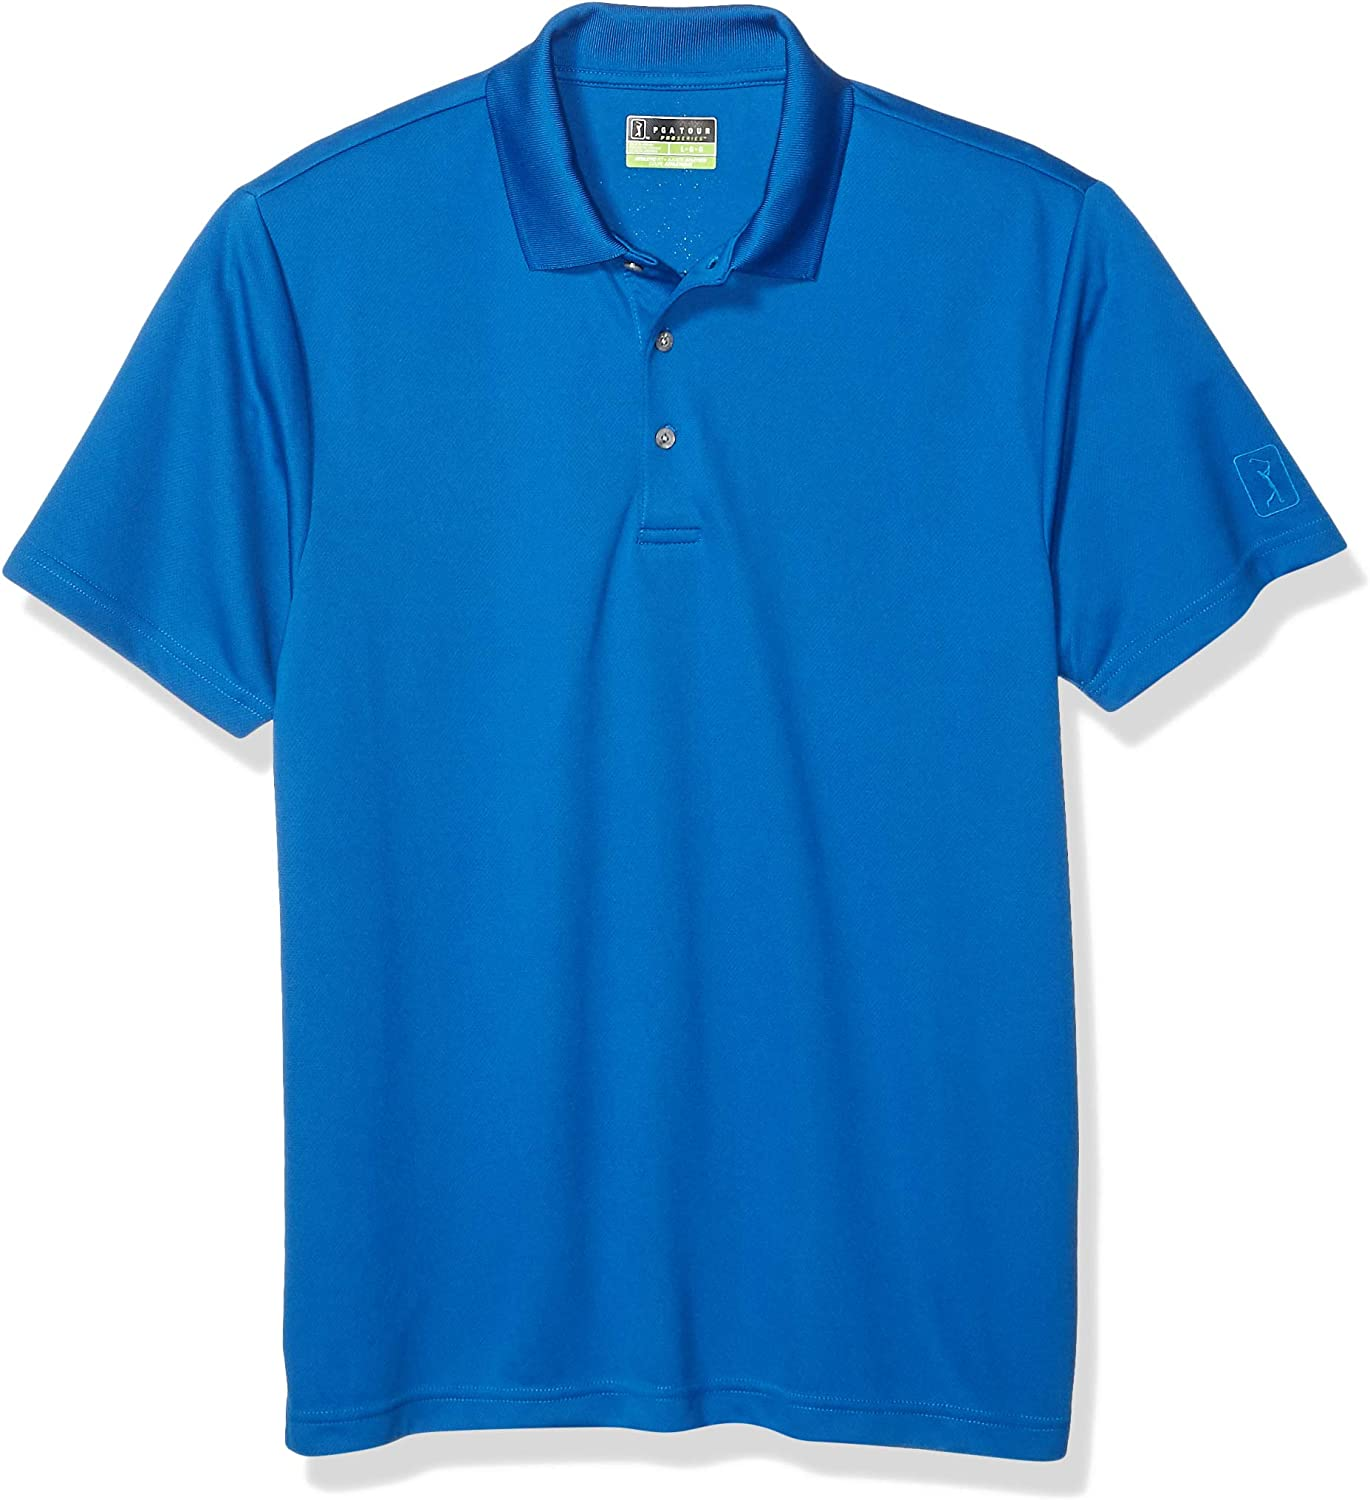 PGA TOUR Men's Airflux Polo-Shirts Award-winning store Short Solid Sleeve Super special price